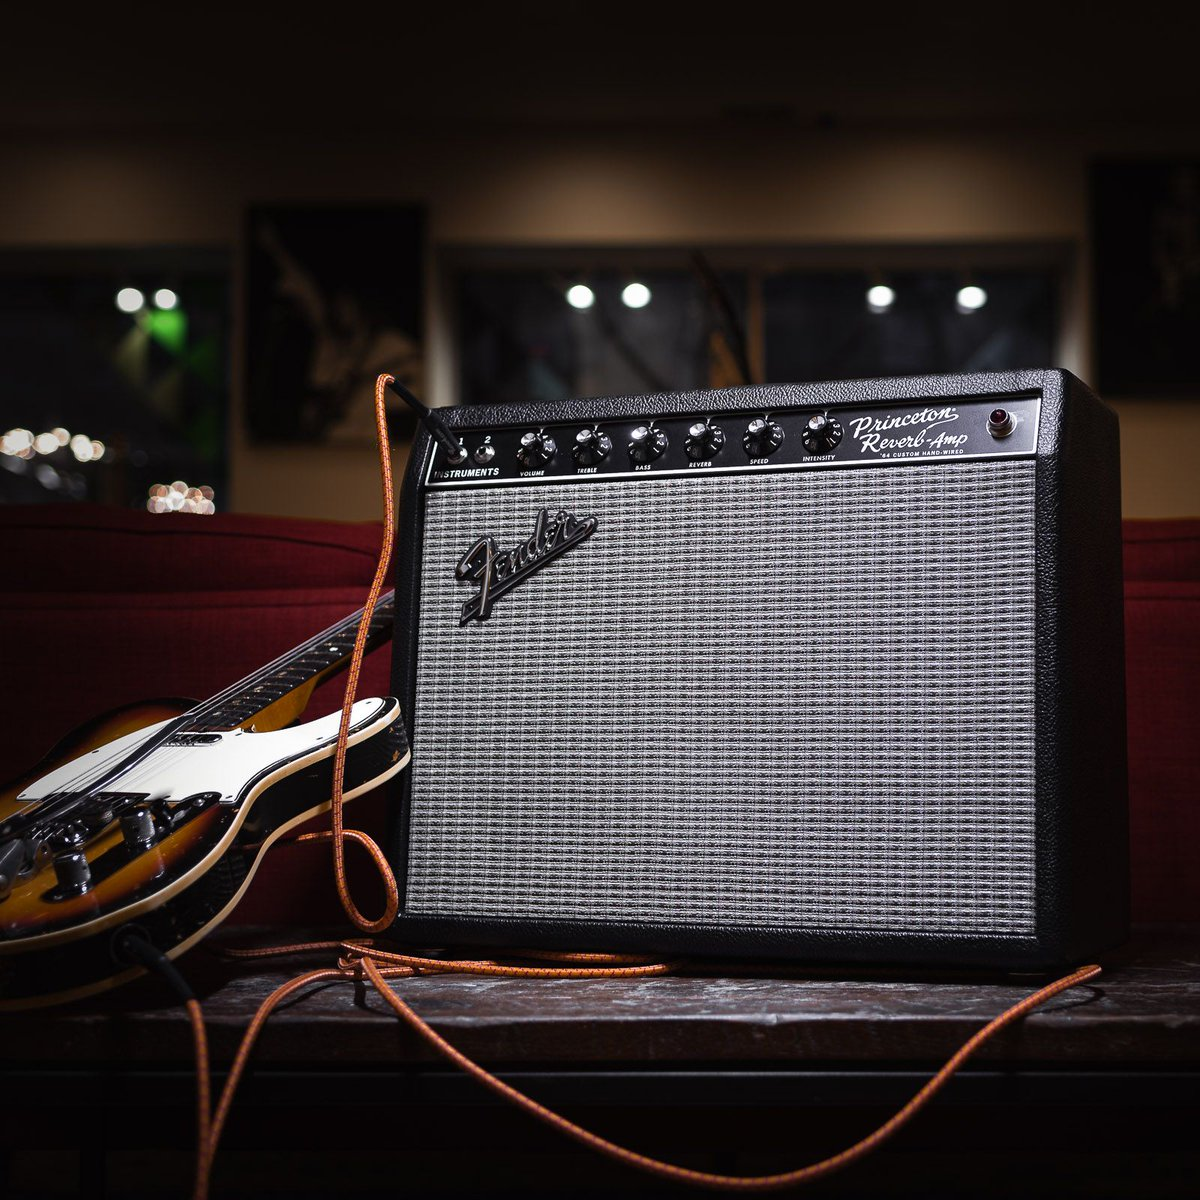 The tone of the 1960s is back in the @Fender 64 Custom Princeton Reissue. http://bit.ly/32gLPMJ #fender #64 #custom #princetonreverb #reissue #120v #gearwire #gearybusey #guitarspotter #guitarphotography #guitarsdaily #tonemob #knowyourtonepic.twitter.com/gr6qxTMT9k